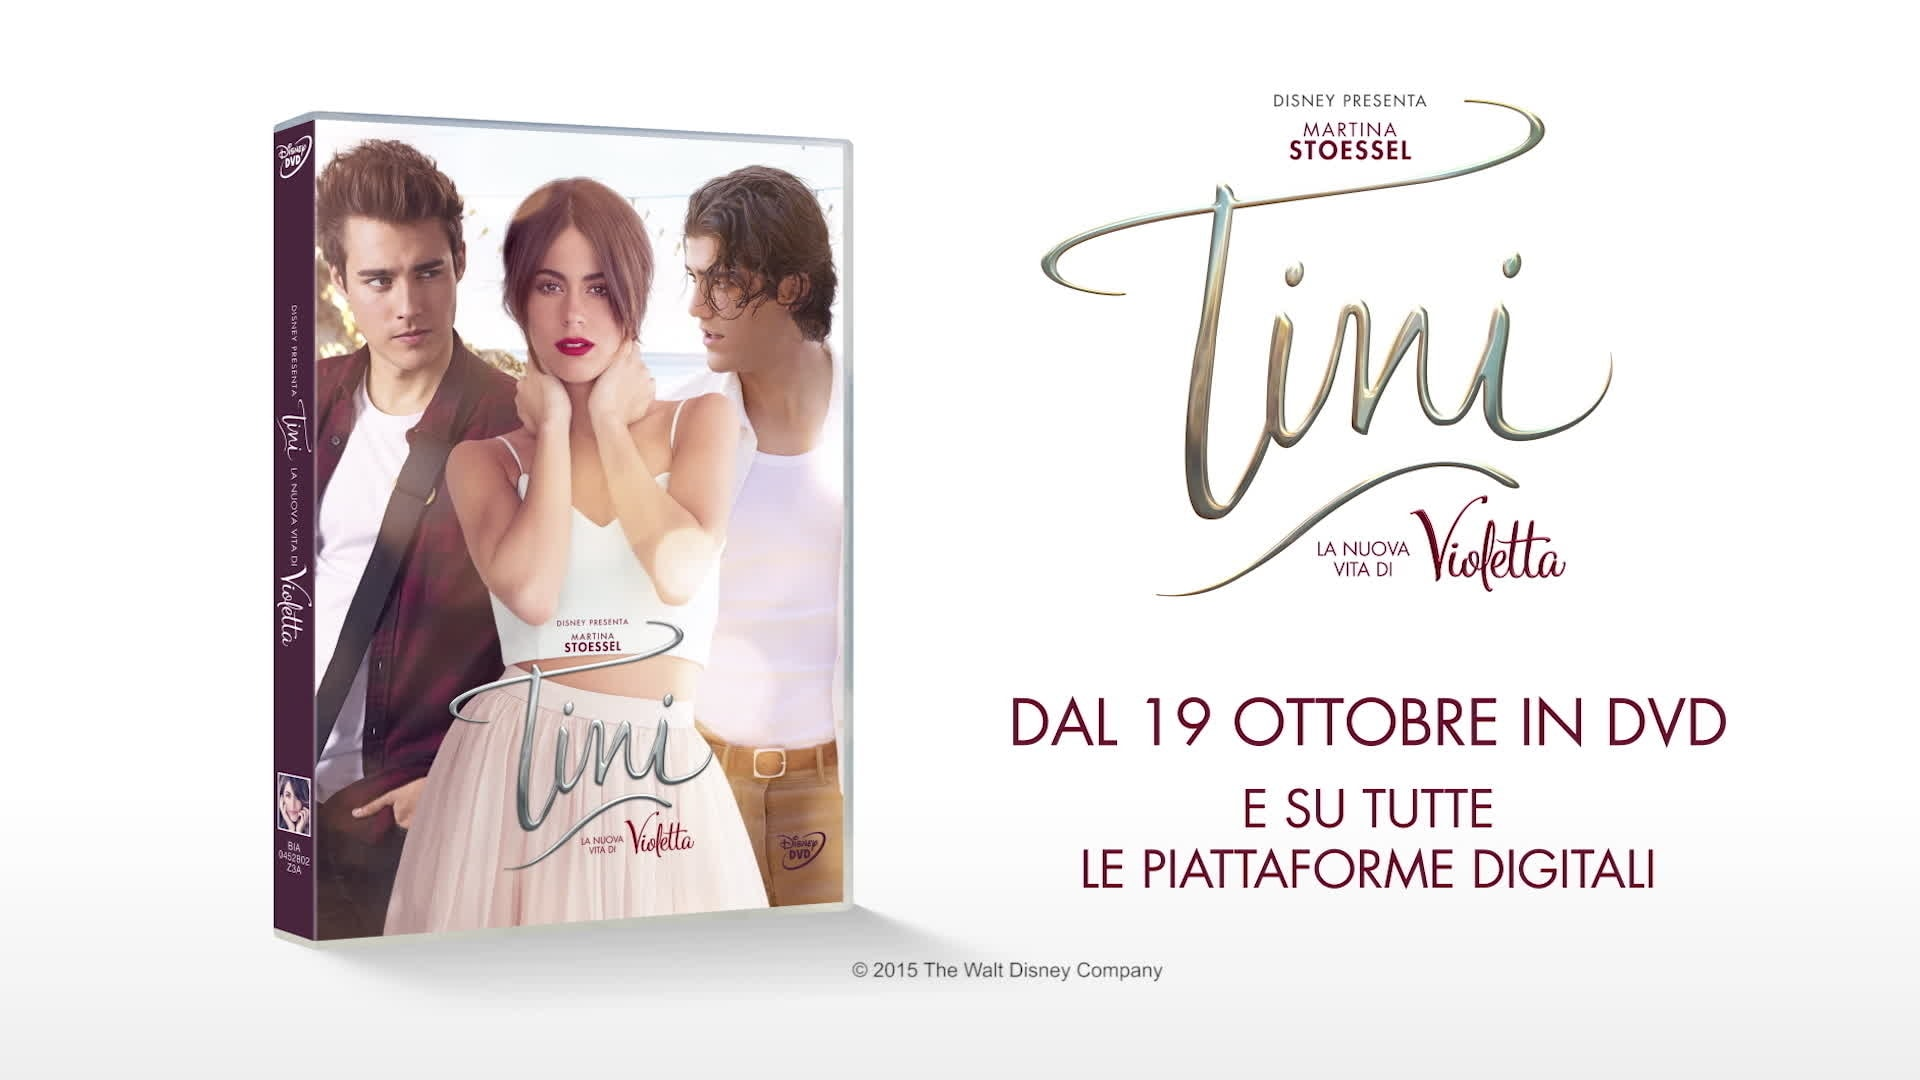 Tini in DVD